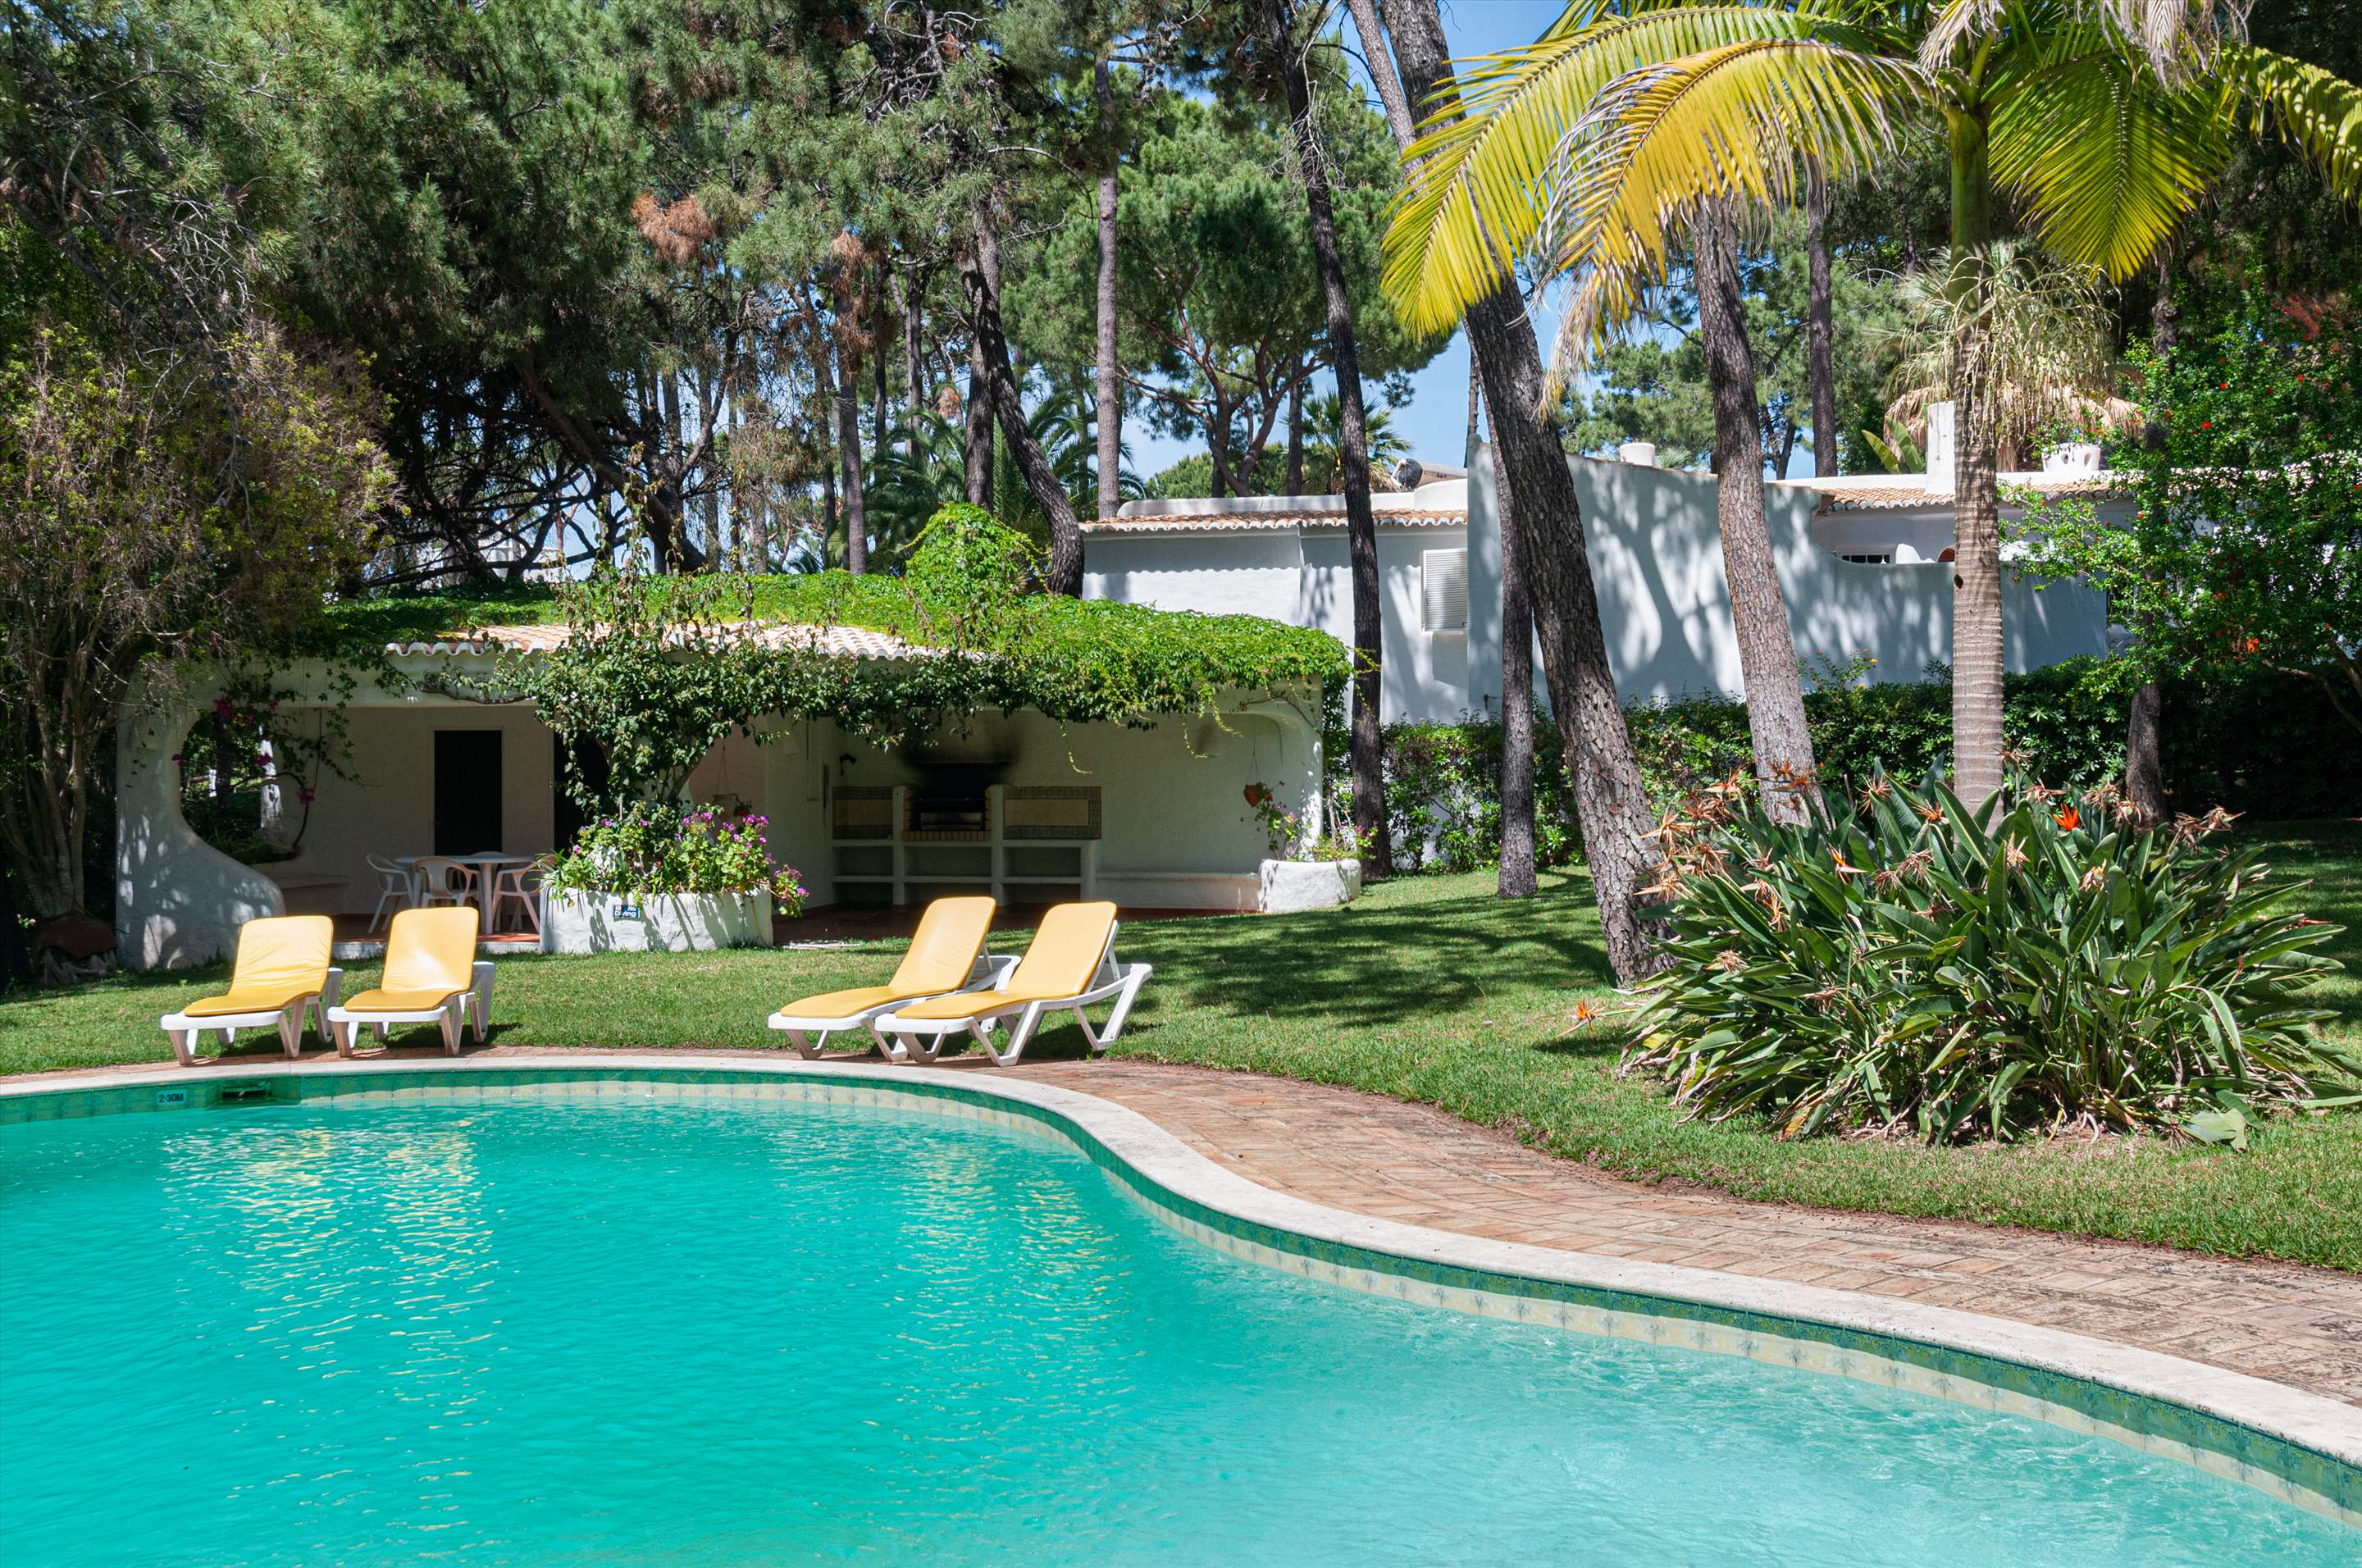 Casa do Pinhal, 4 bedroom villa in Vilamoura Area, Algarve Photo #3